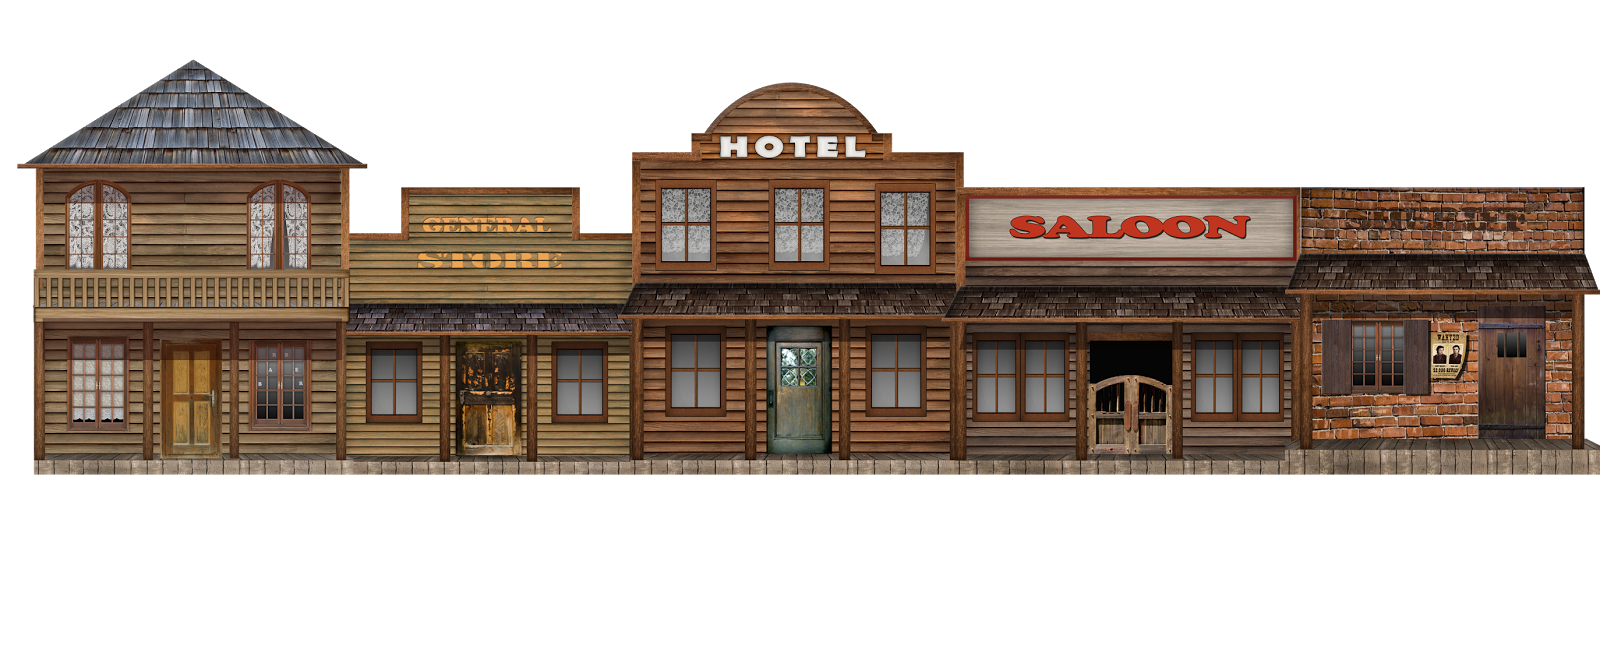 Prairie house clipart clipart stock old west town clipart - Google Search | old west town | Pinterest ... clipart stock